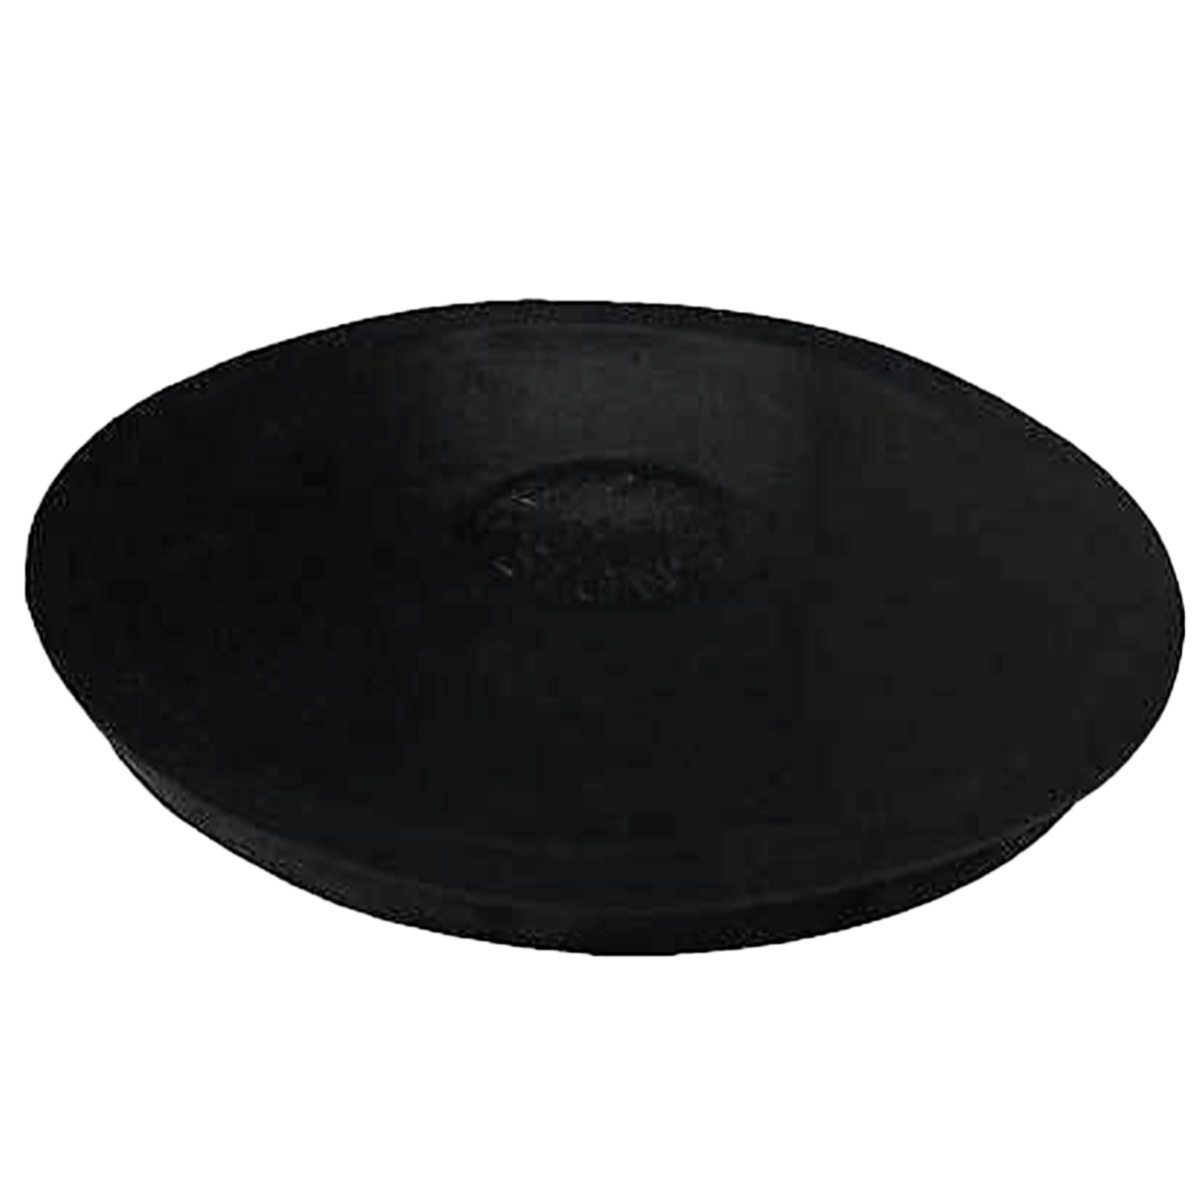 rubber cover for english taxi roofsign round magnet